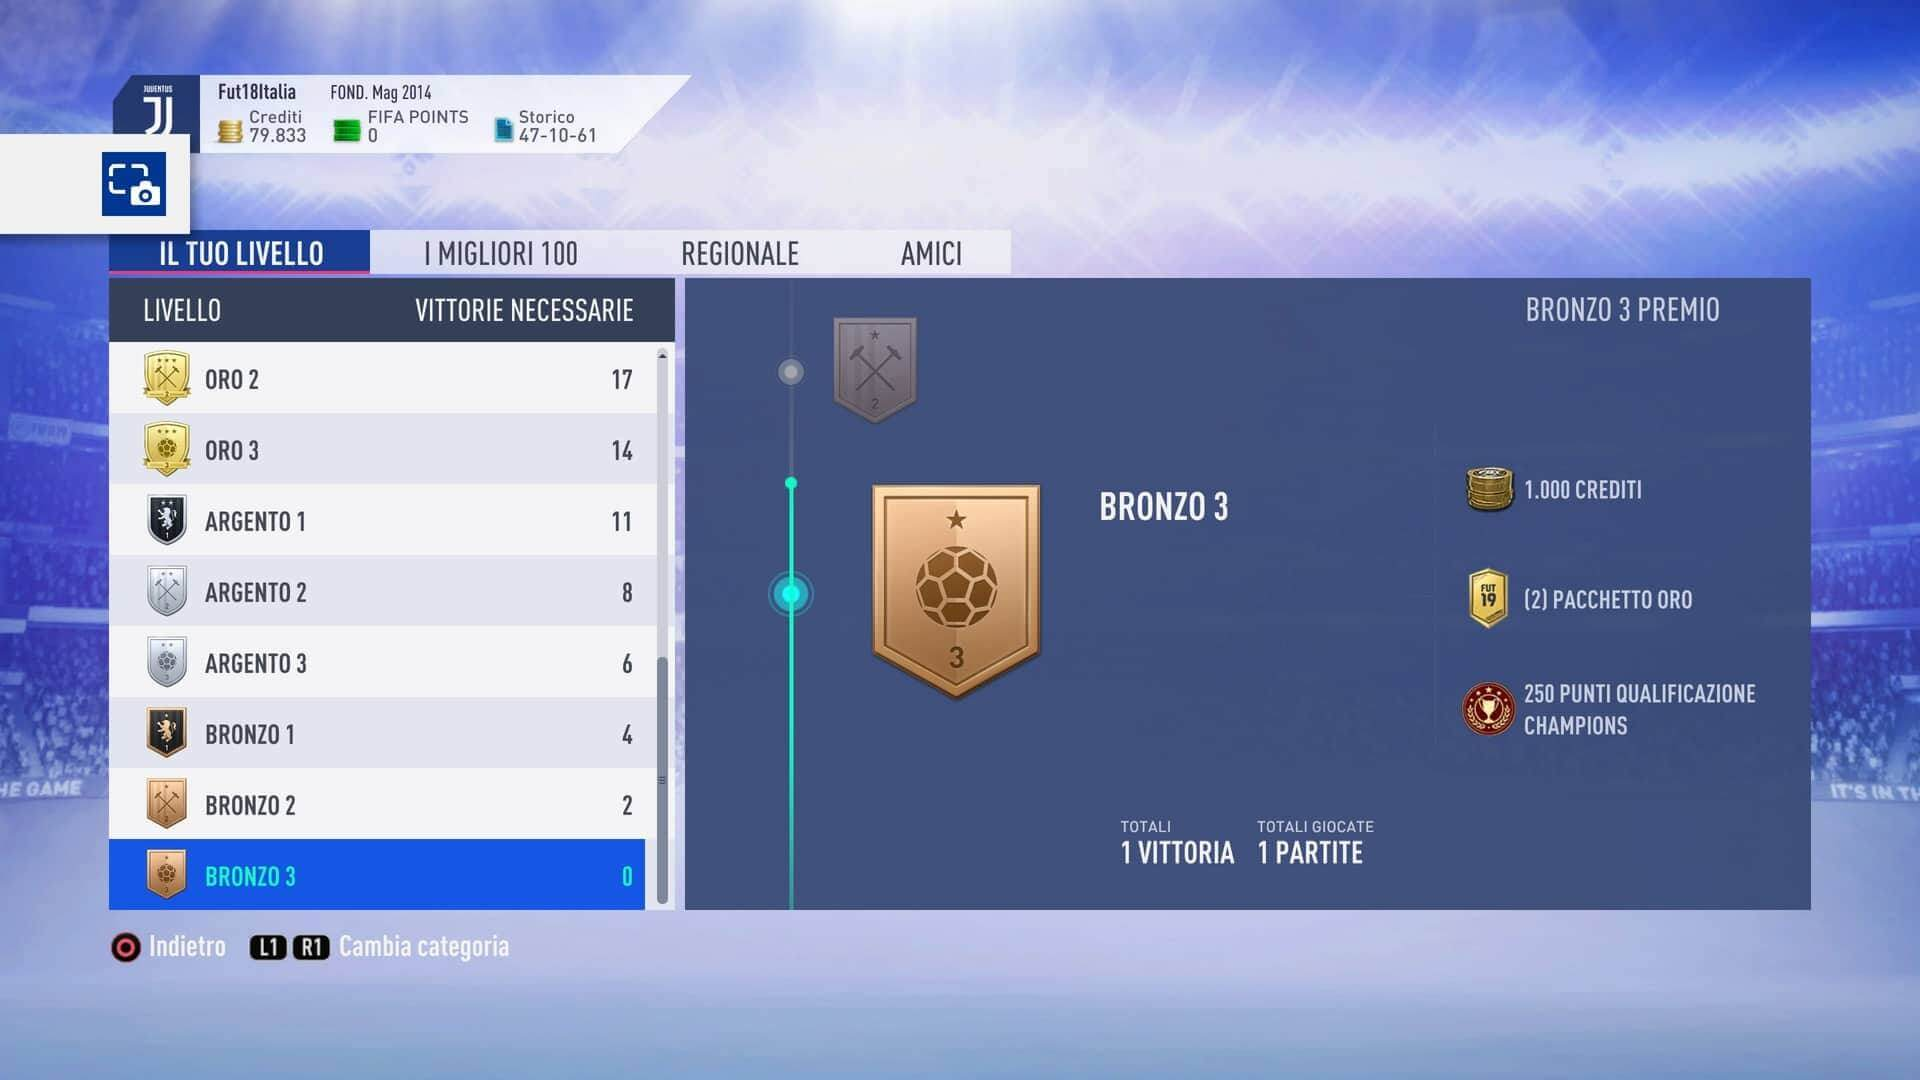 Vittorie necessarie per raggiungere argento 1 in Weekend League su FIFA 19